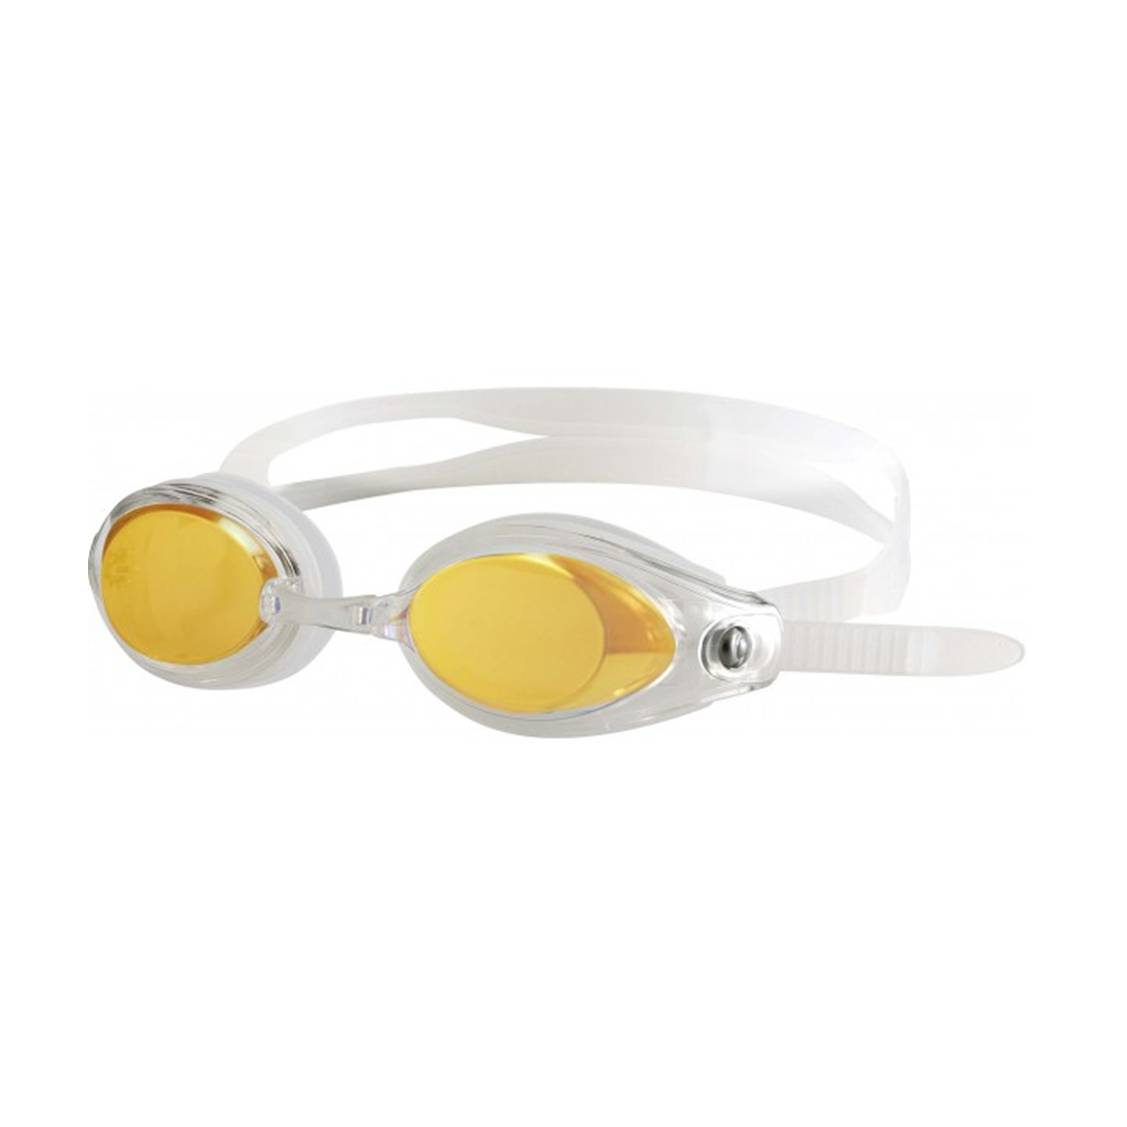 9192039002 – G39-C – Goggles Adult Clear